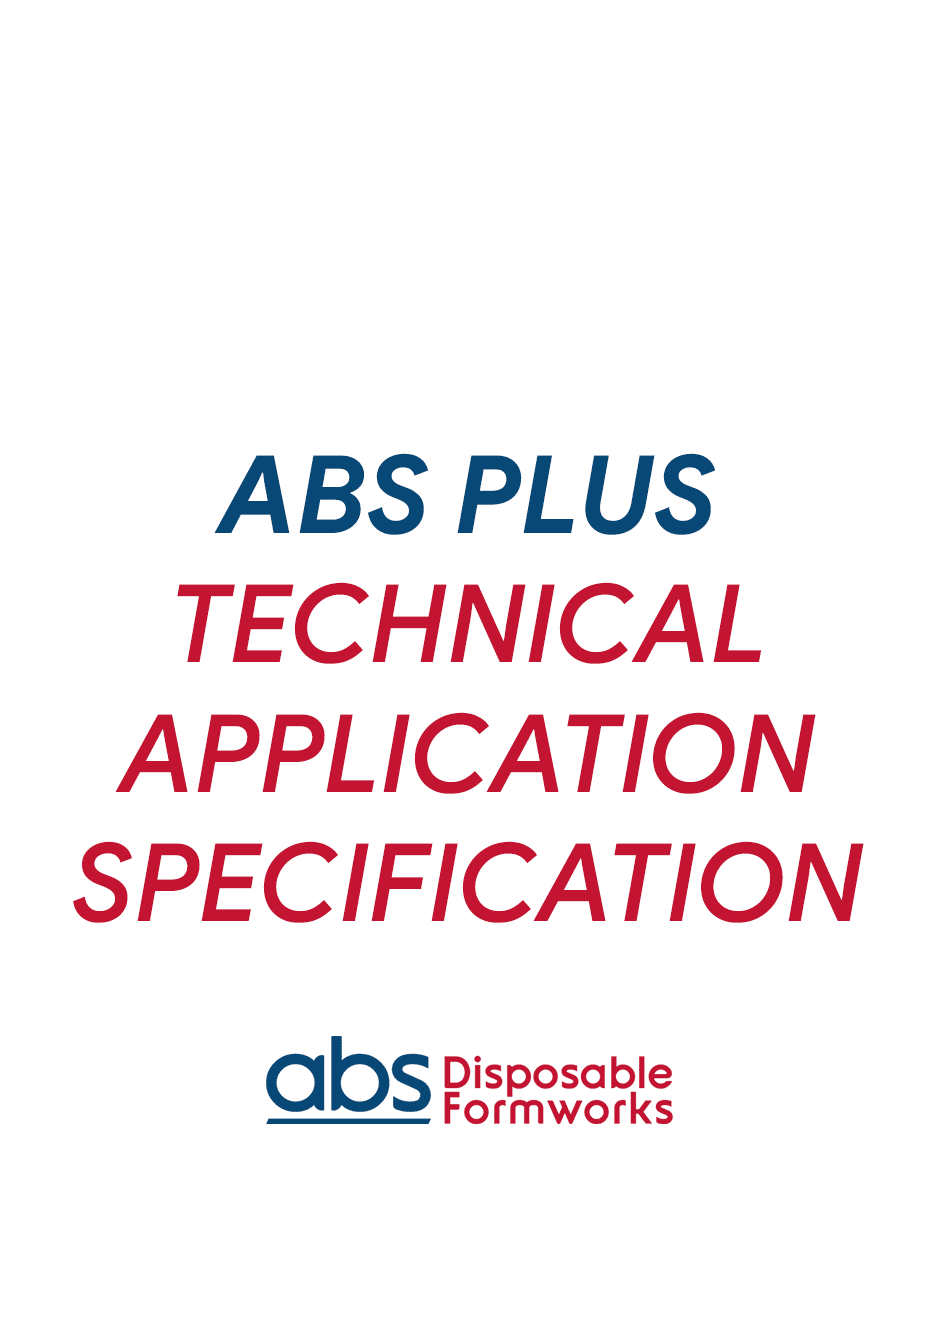 ABS_PLUS_TECHNICAL_APPLICATION_SPECIFICATION